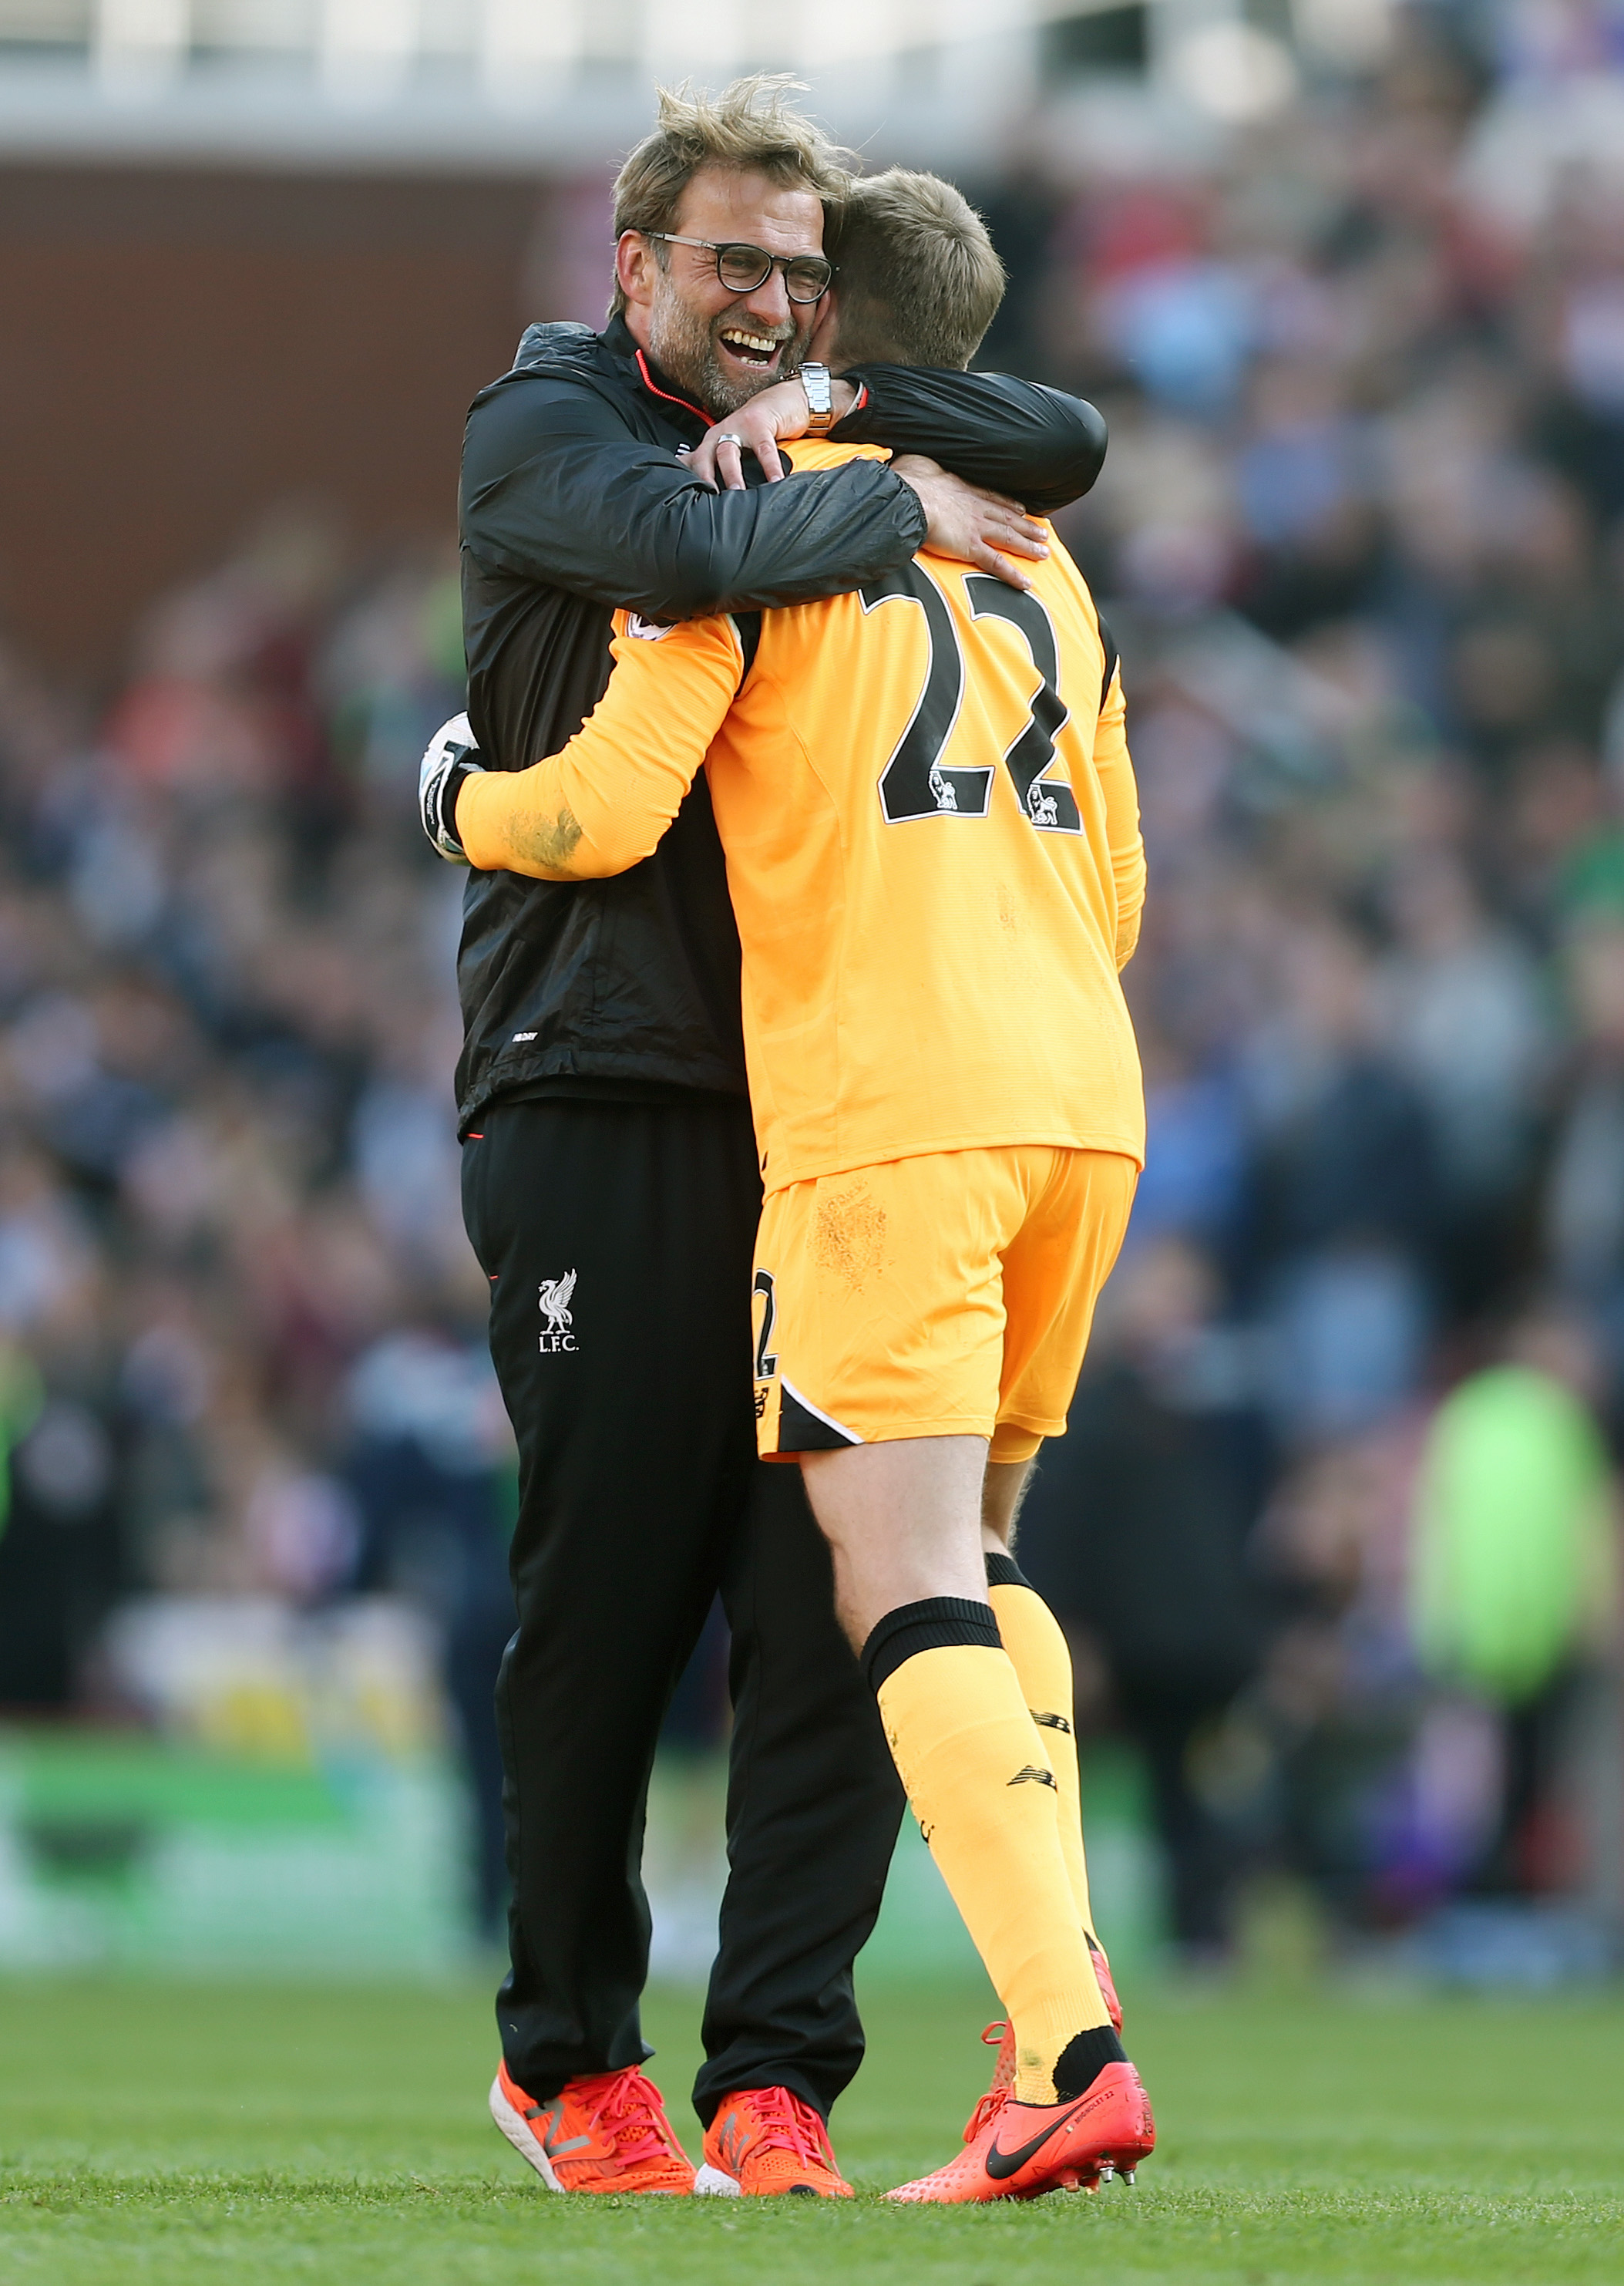 Simon Mignolet reveals what Jurgen Klopp said to him after Stoke heroics